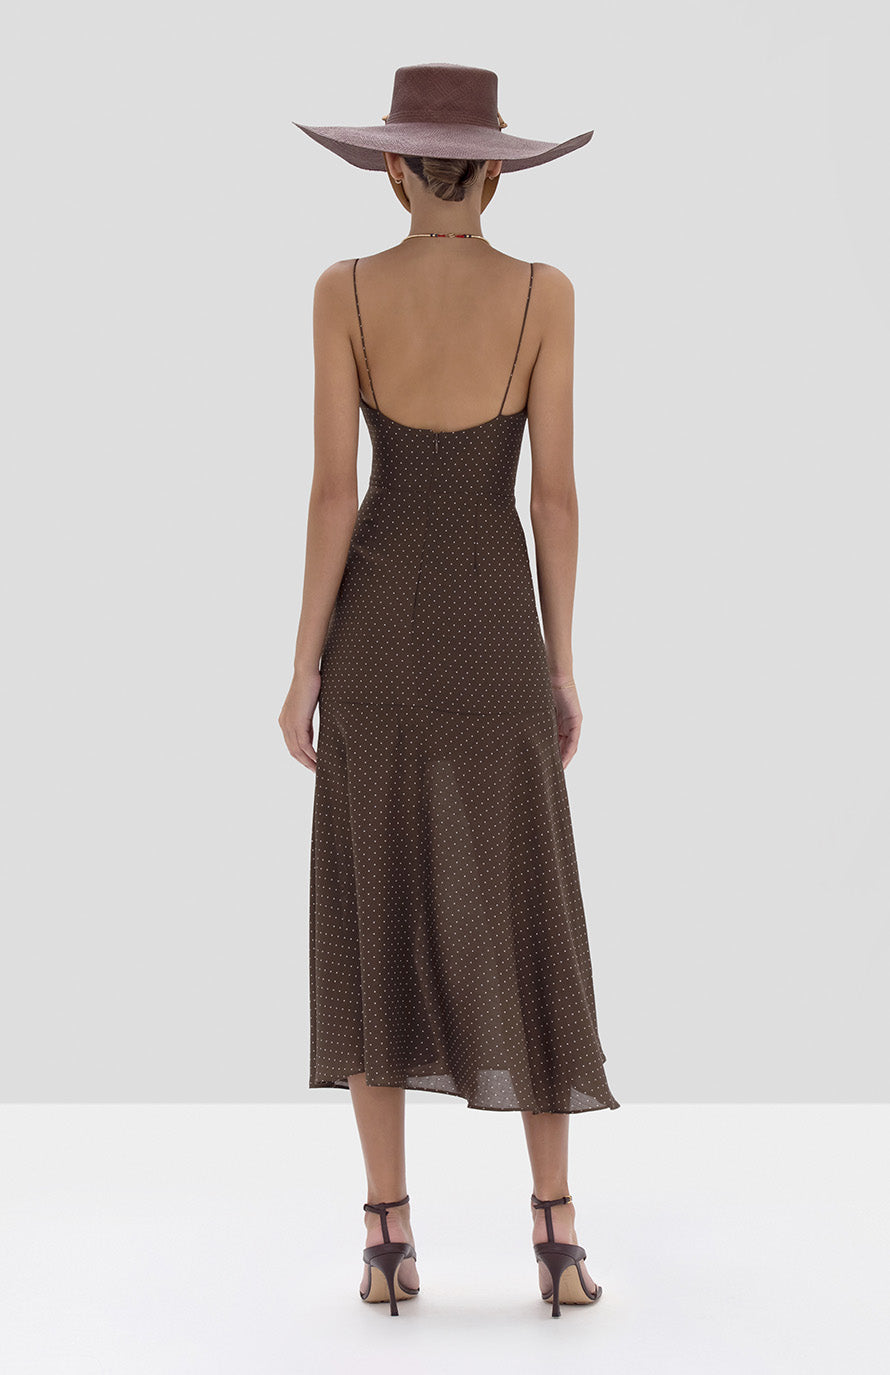 Alexis Nizarra Dress in Mocha Dot Linen from the Spring Summer 2020 Collection - Rear View